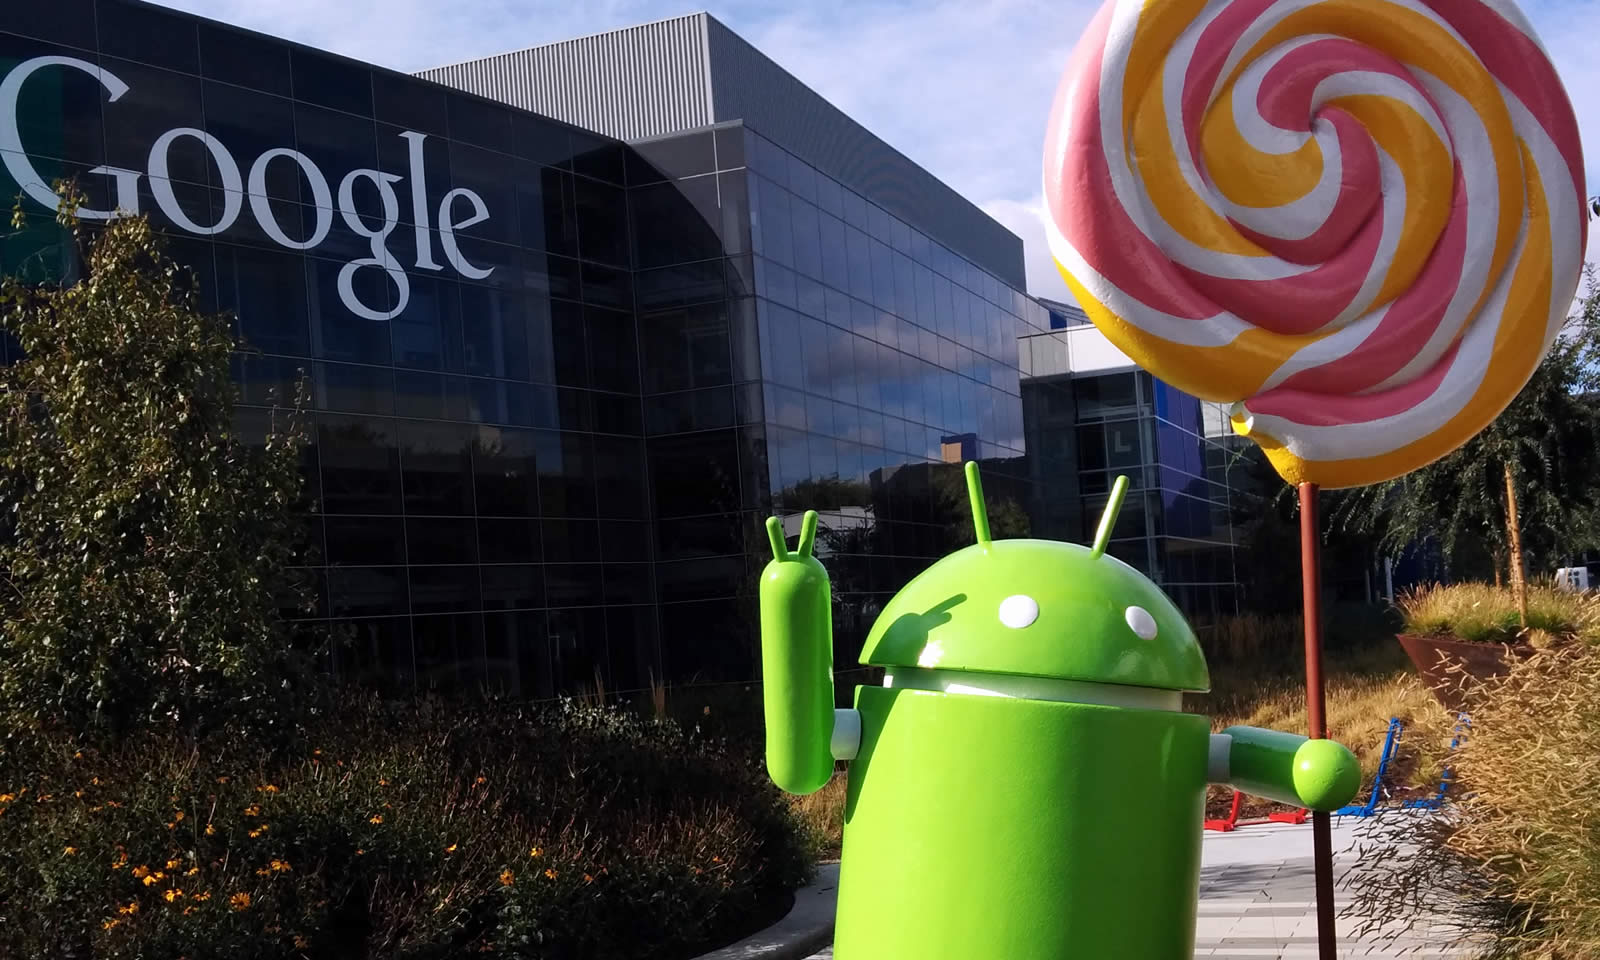 RecyclerView was introduced with Android Lollipop